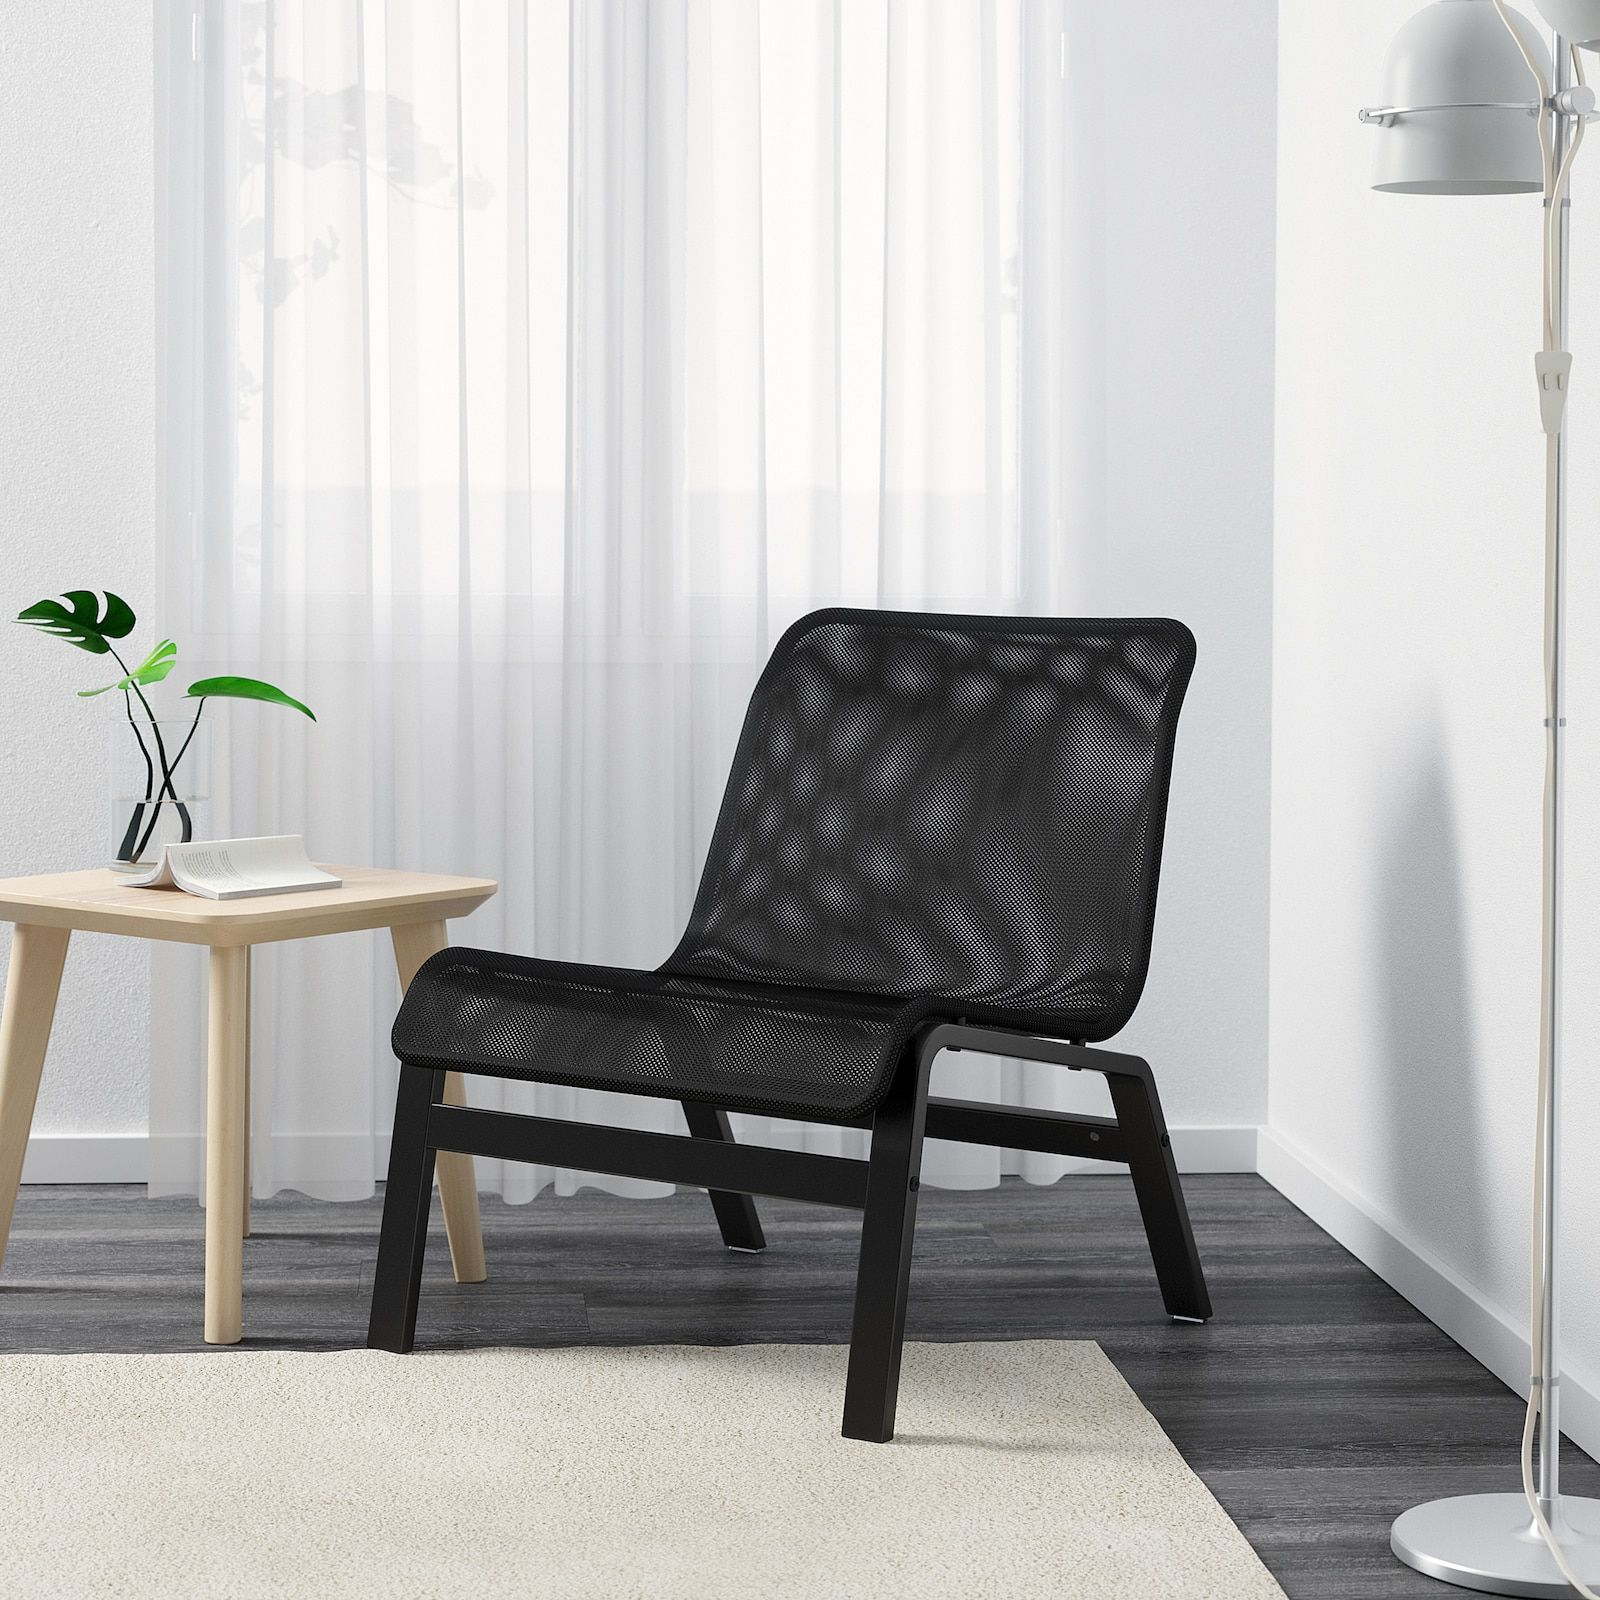 Nolmyra Black Black Easy Chair Ikea In 2020 Scandinavian Furniture Design Accent Chairs For Living Room Black Lounge Chair